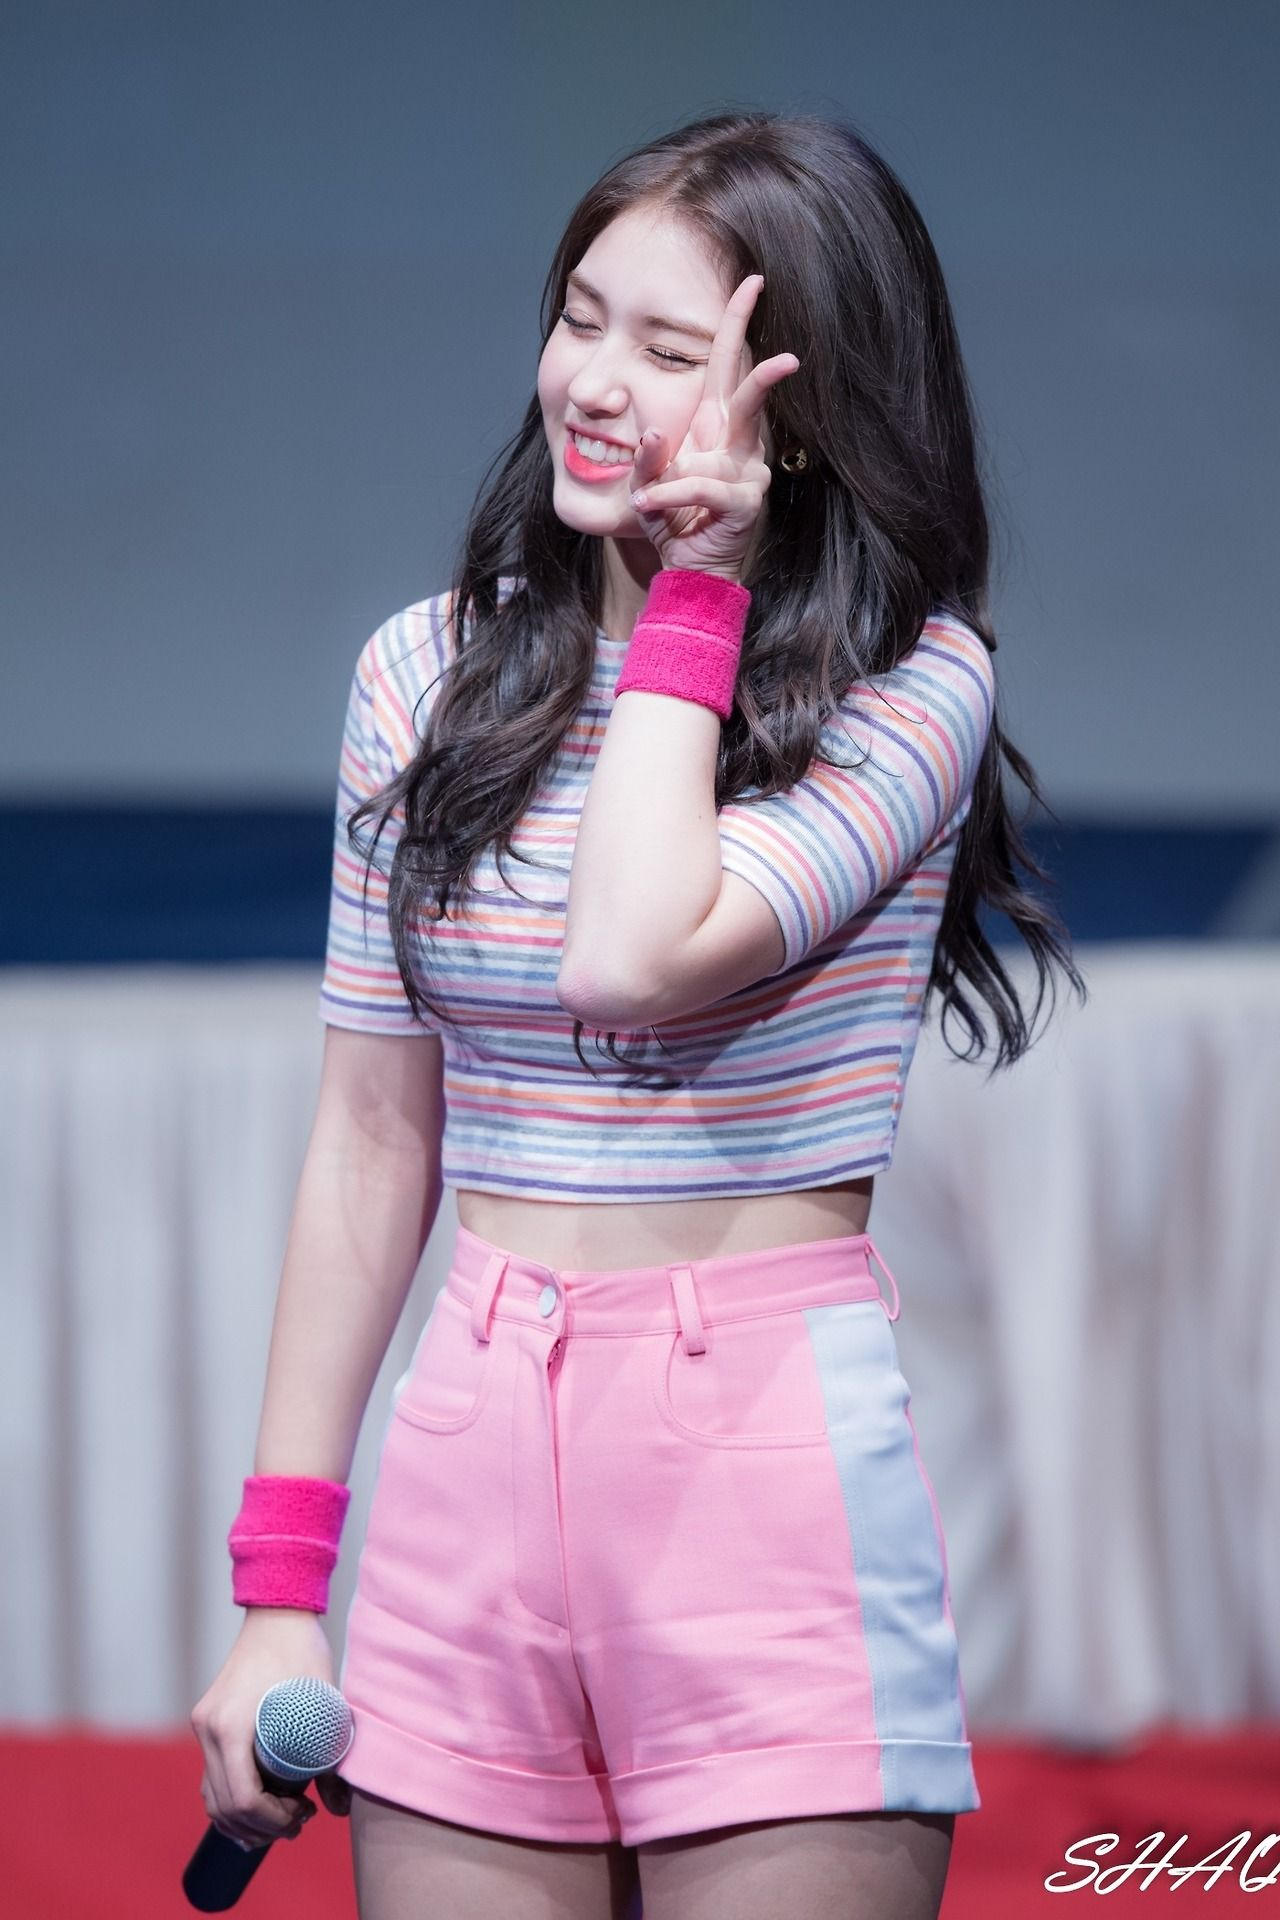 March 9th Jeon Somi S Birthday 16 Jeon Somi Kpop Girls Somi